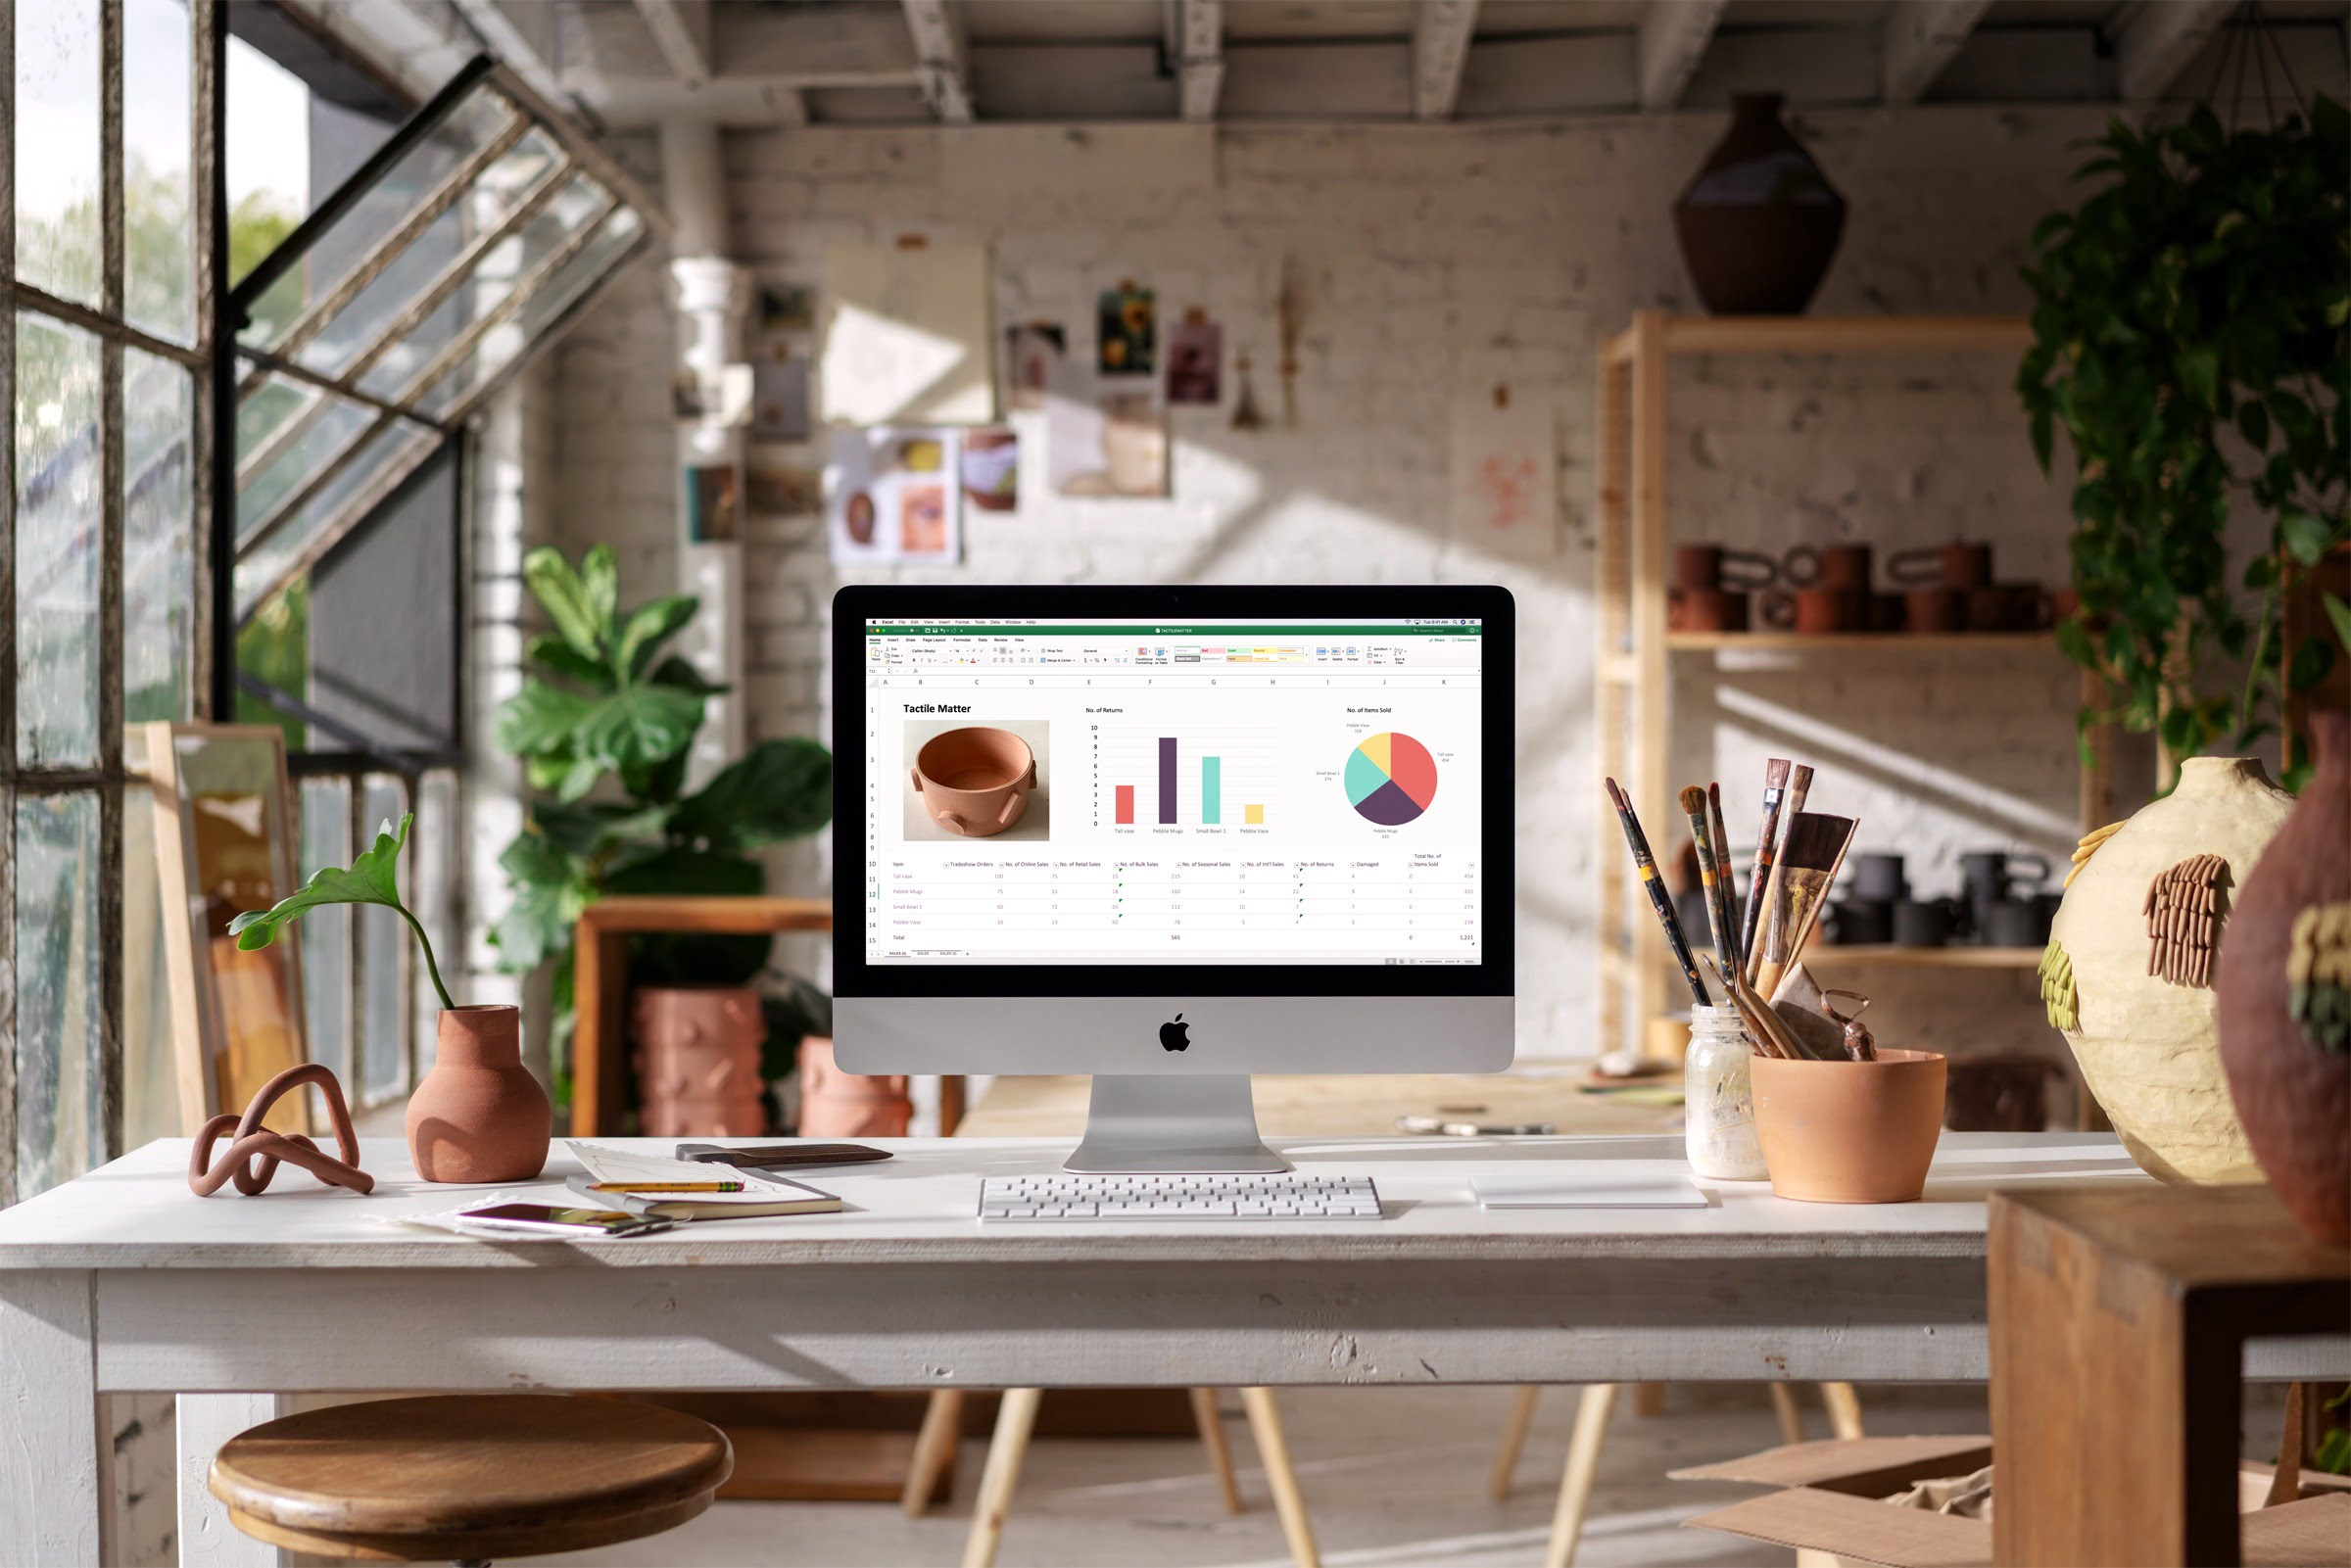 Apple iMac gets 2x more performance small business screen 03192019